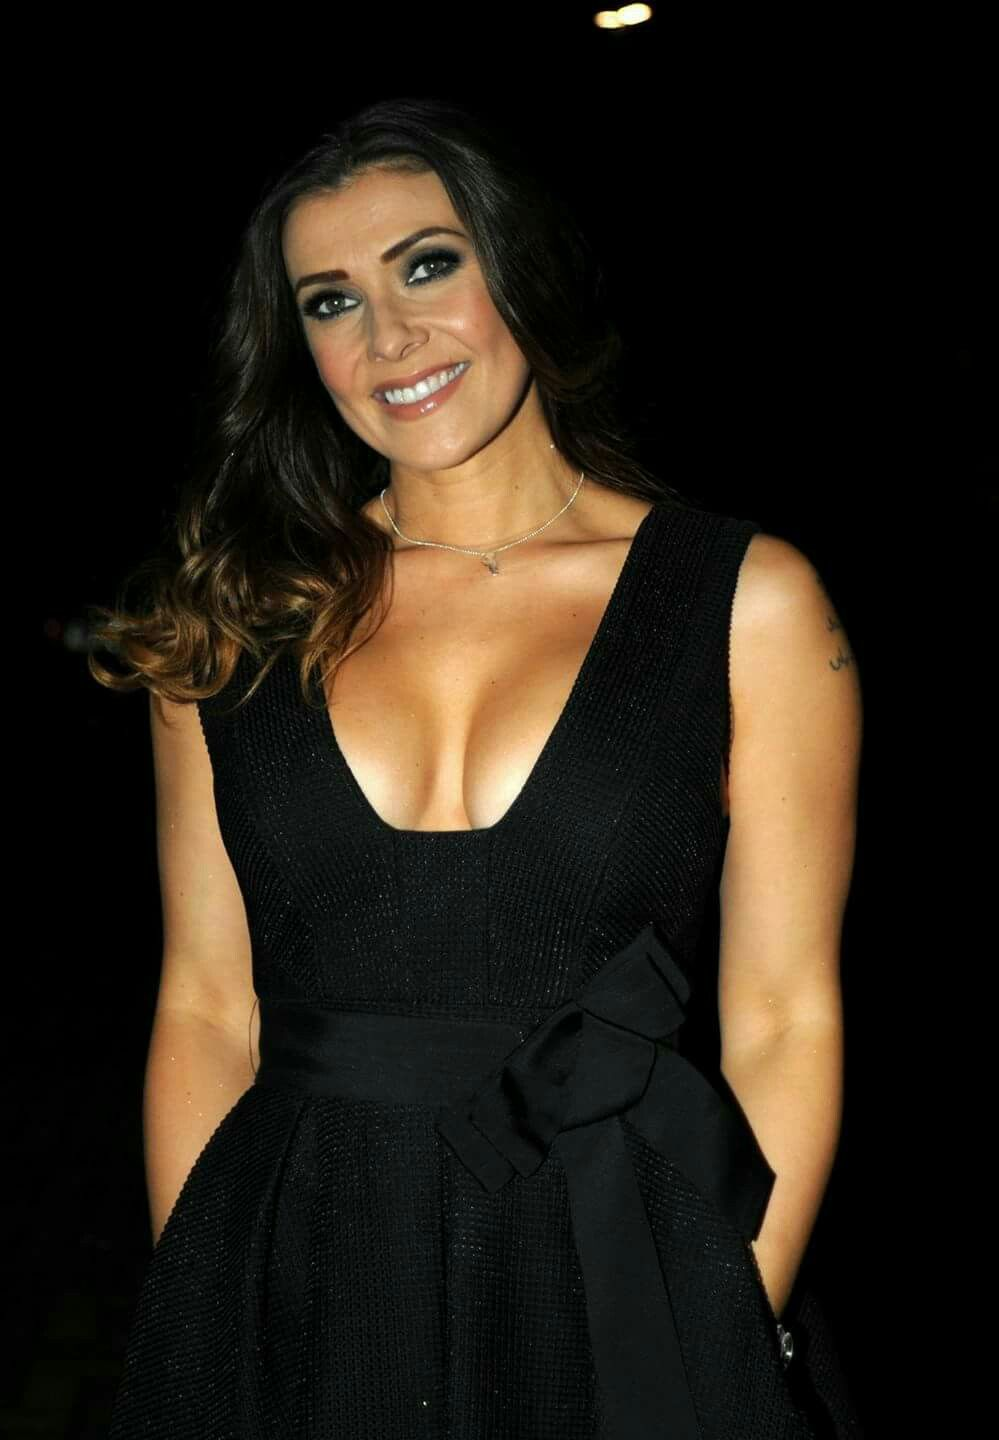 Cleavage Kym Marsh naked (42 foto and video), Topless, Bikini, Twitter, bra 2018